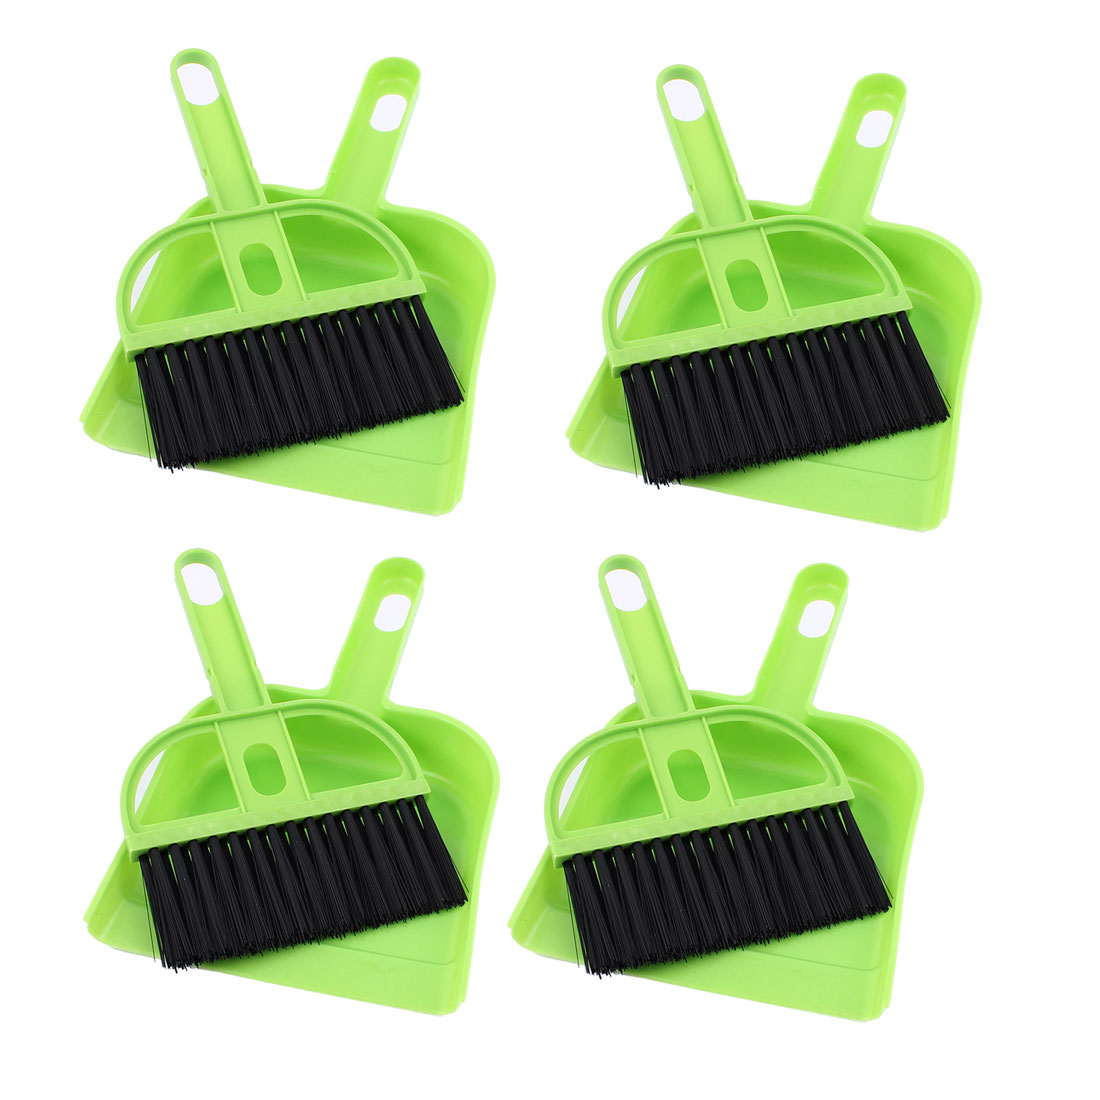 Computer Keyboard Car Window Fans Leaf Cleaner Cleaning Tool Brush Dustpan Green 4 Sets